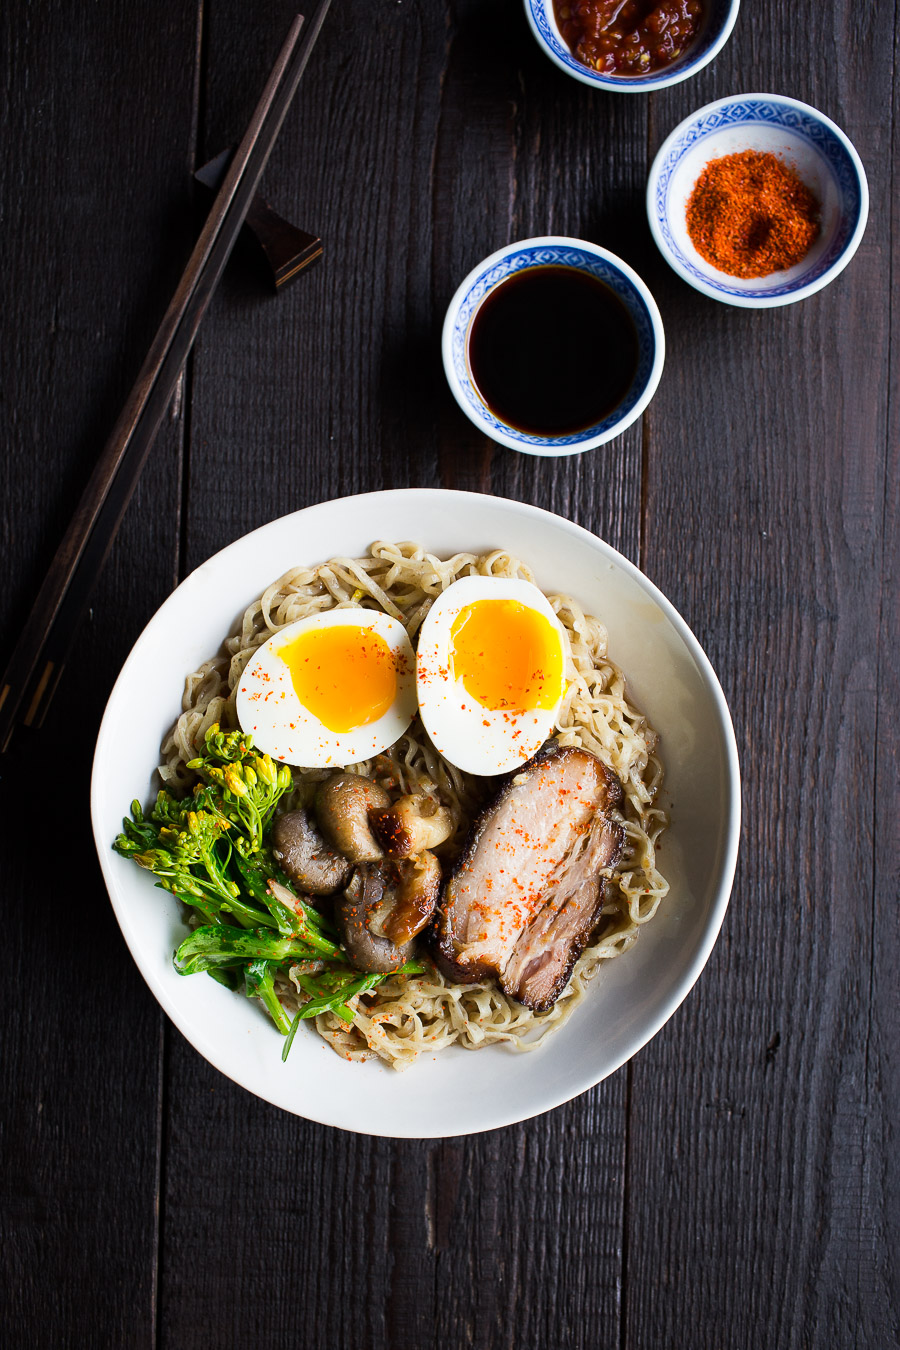 Pork Ramen with homemade ramen noodles